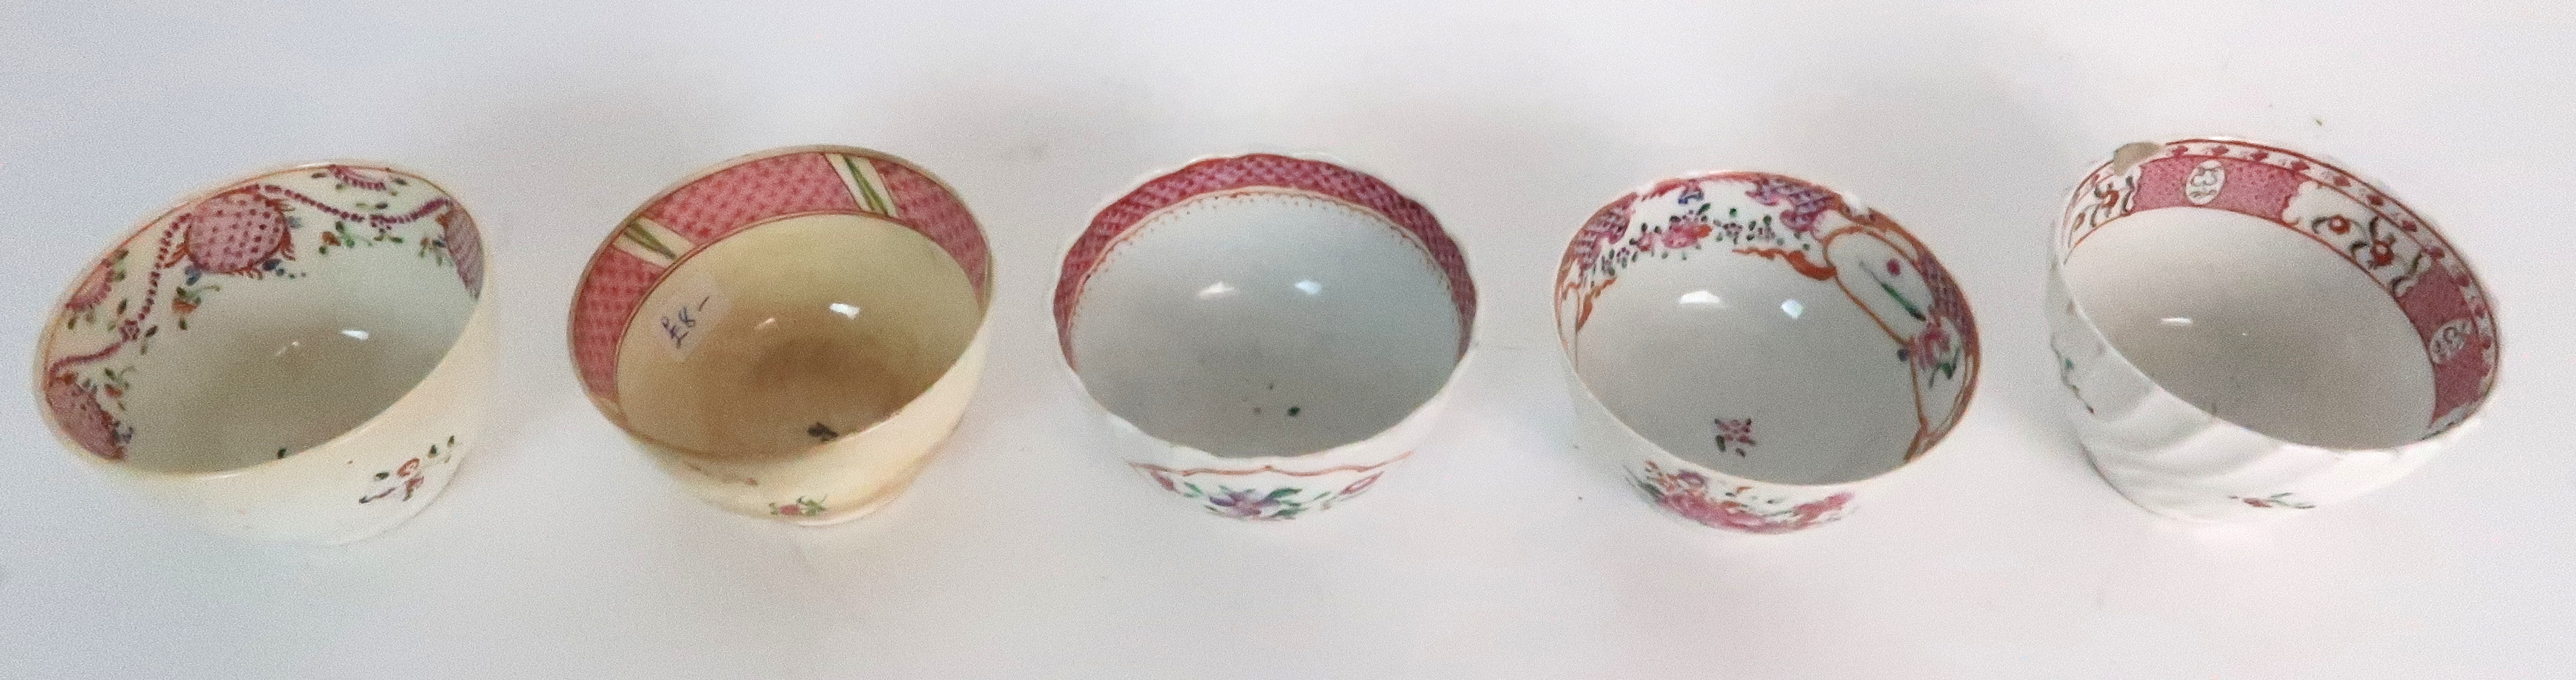 A COLLECTION OF TEA BOWLS AND SAUCERS each with pink scale and floral decoration including New Hall; - Image 6 of 12